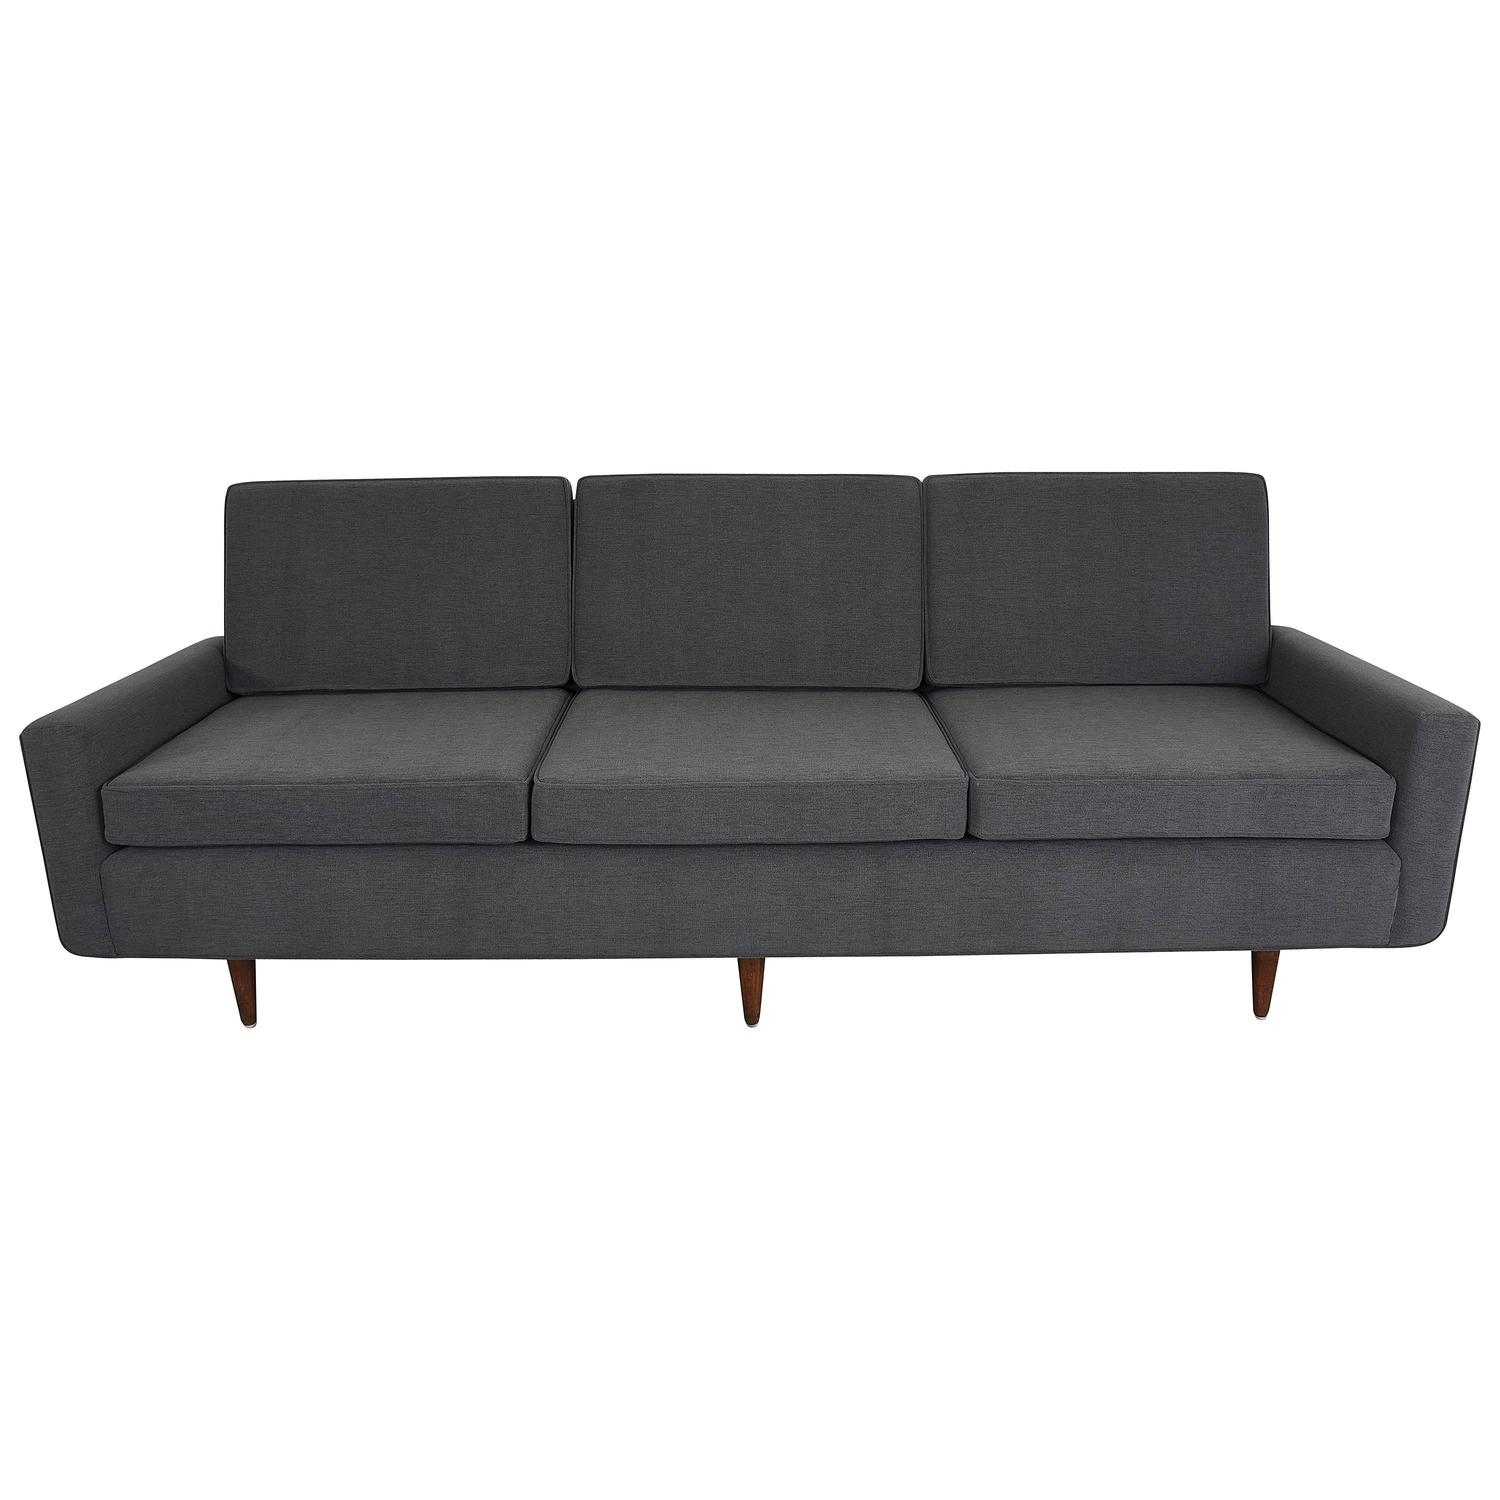 Florence Knoll Sofa Three Seat Sofa Model 26 Pair Available For Intended For Florence Knoll Leather Sofas (Photo 6 of 15)